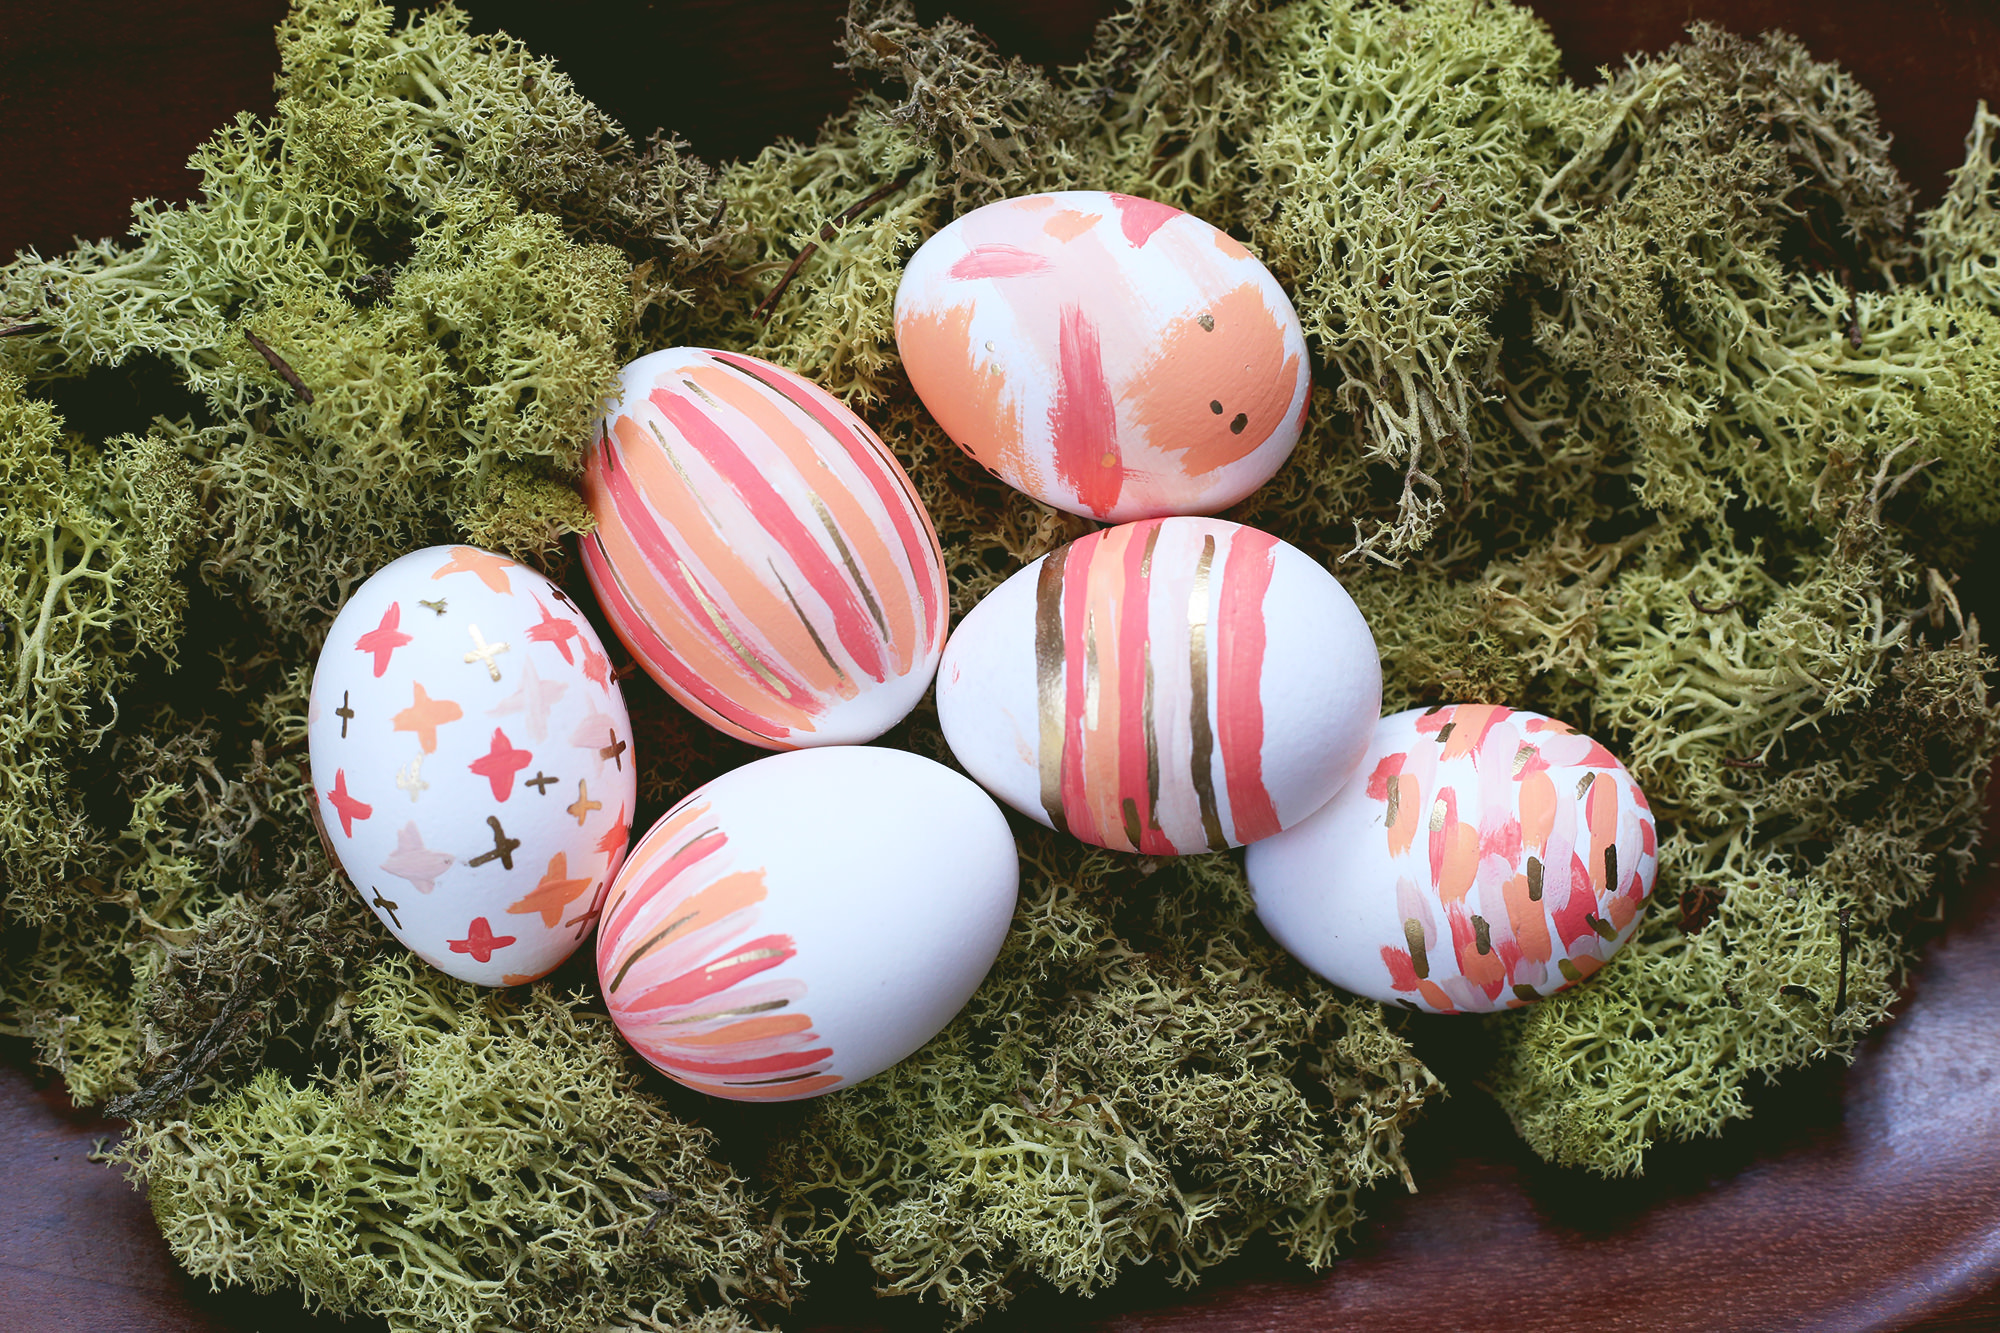 Adding a few simple brushstrokes to your Easter eggs is the perfect way to jazz up your Easter centerpiece without the dye!